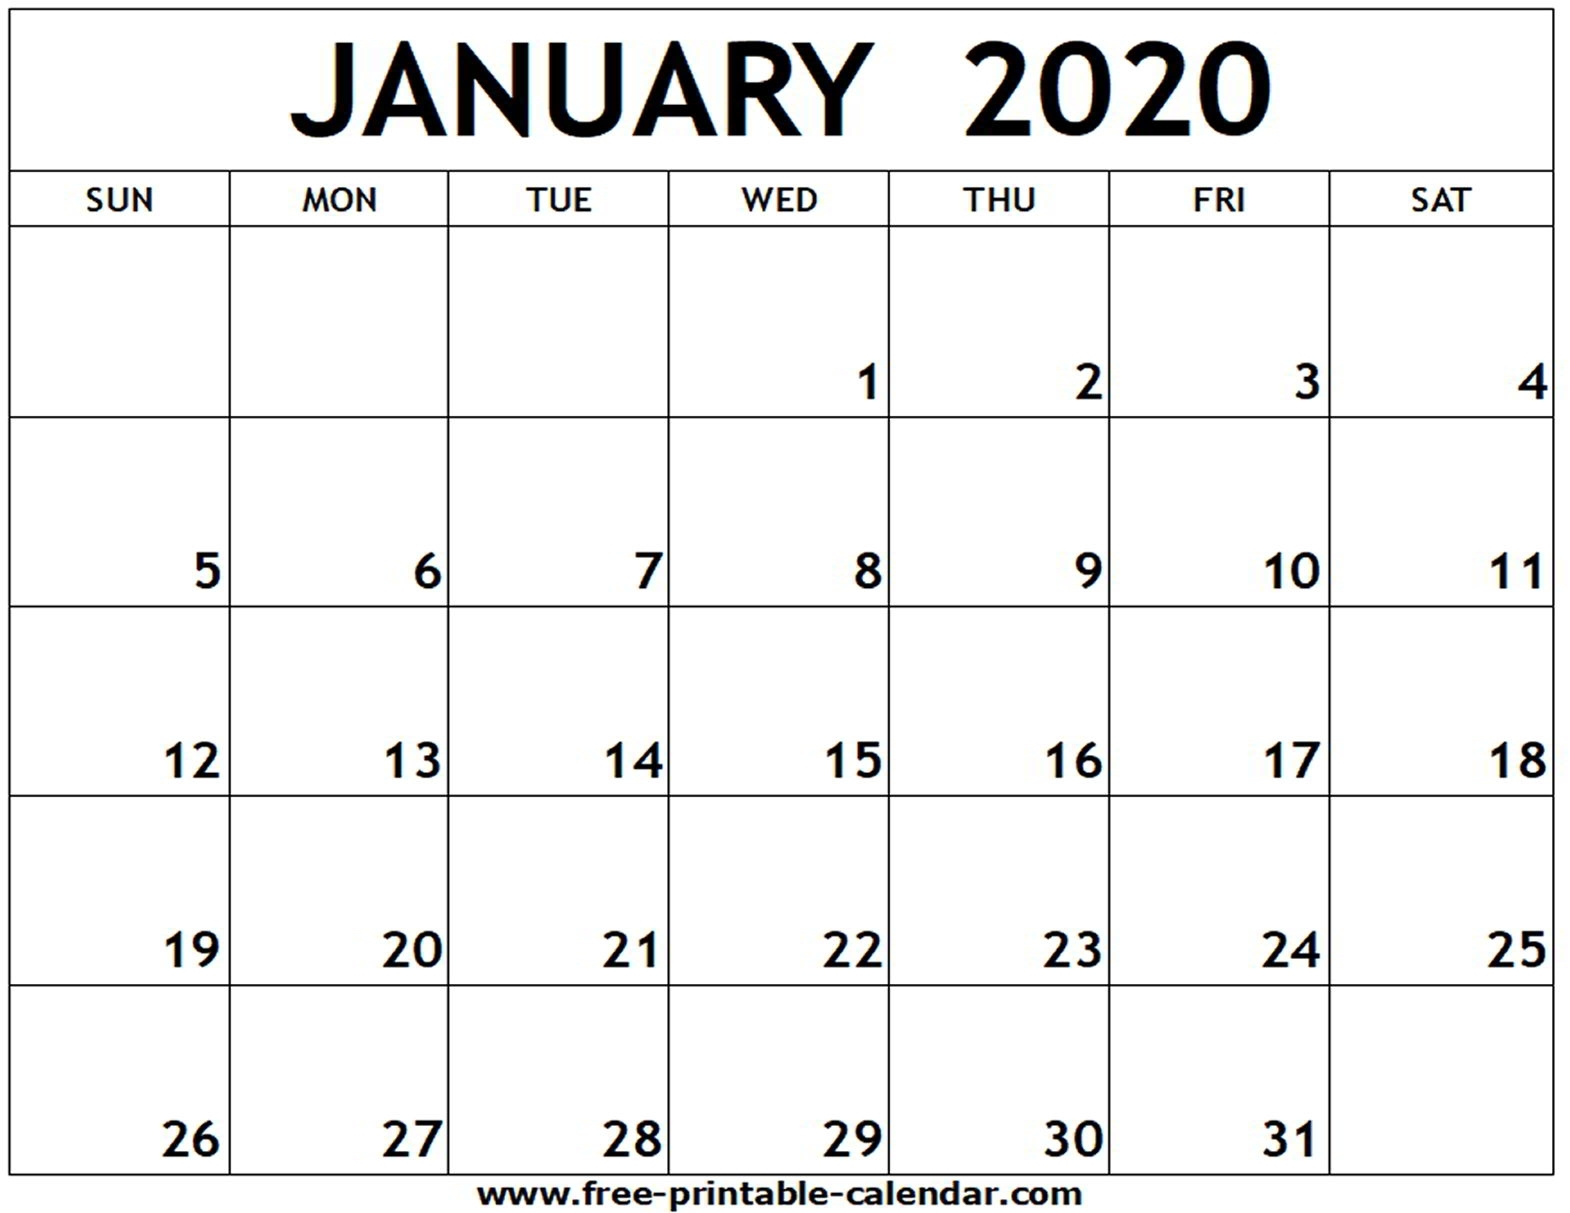 January 2020 Printable Calendar - Free-Printable-Calendar intended for Free Printable Monthly 2020 Calendar